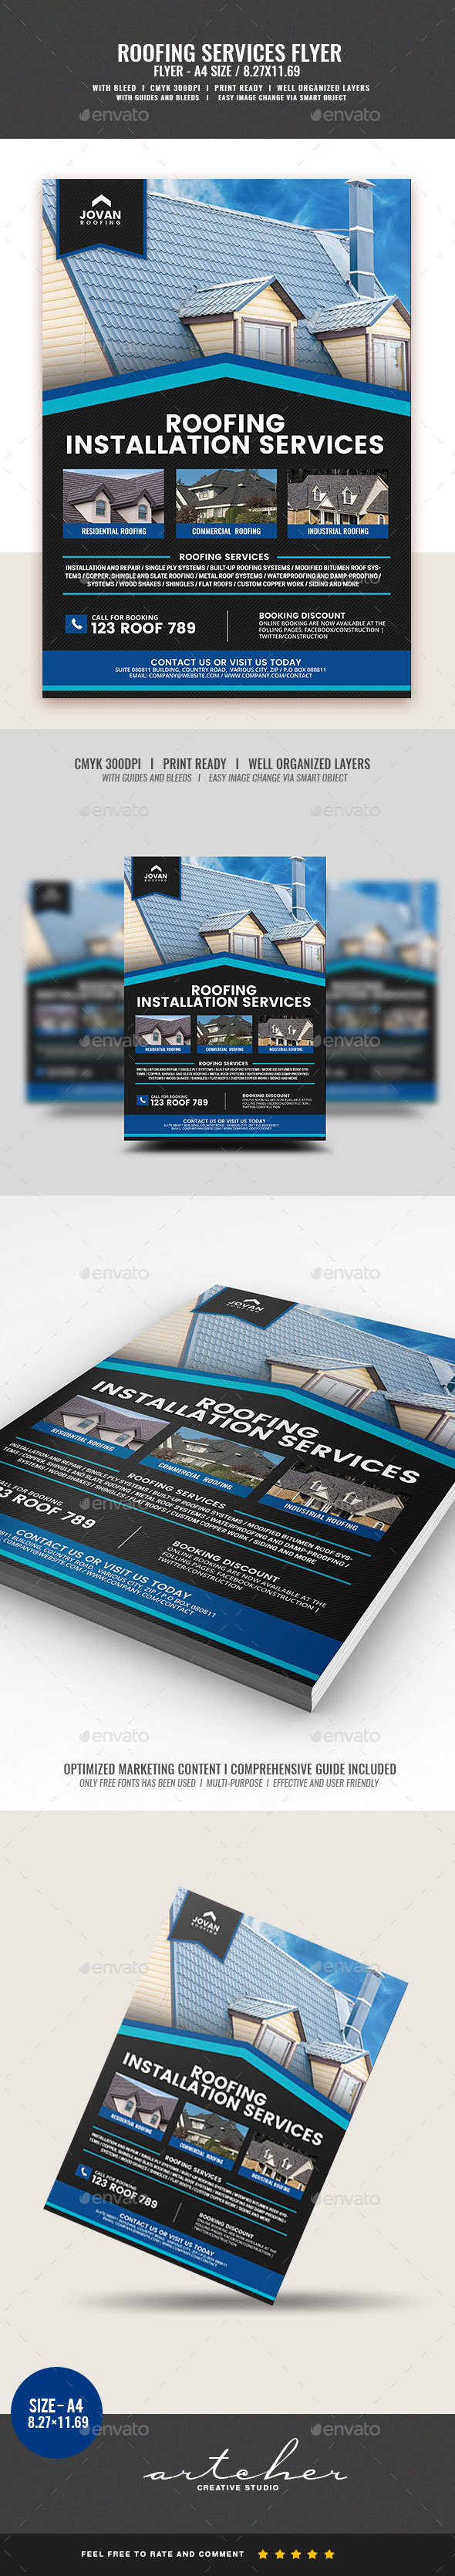 Roofing Services Flyer v2 - Corporate Flyers